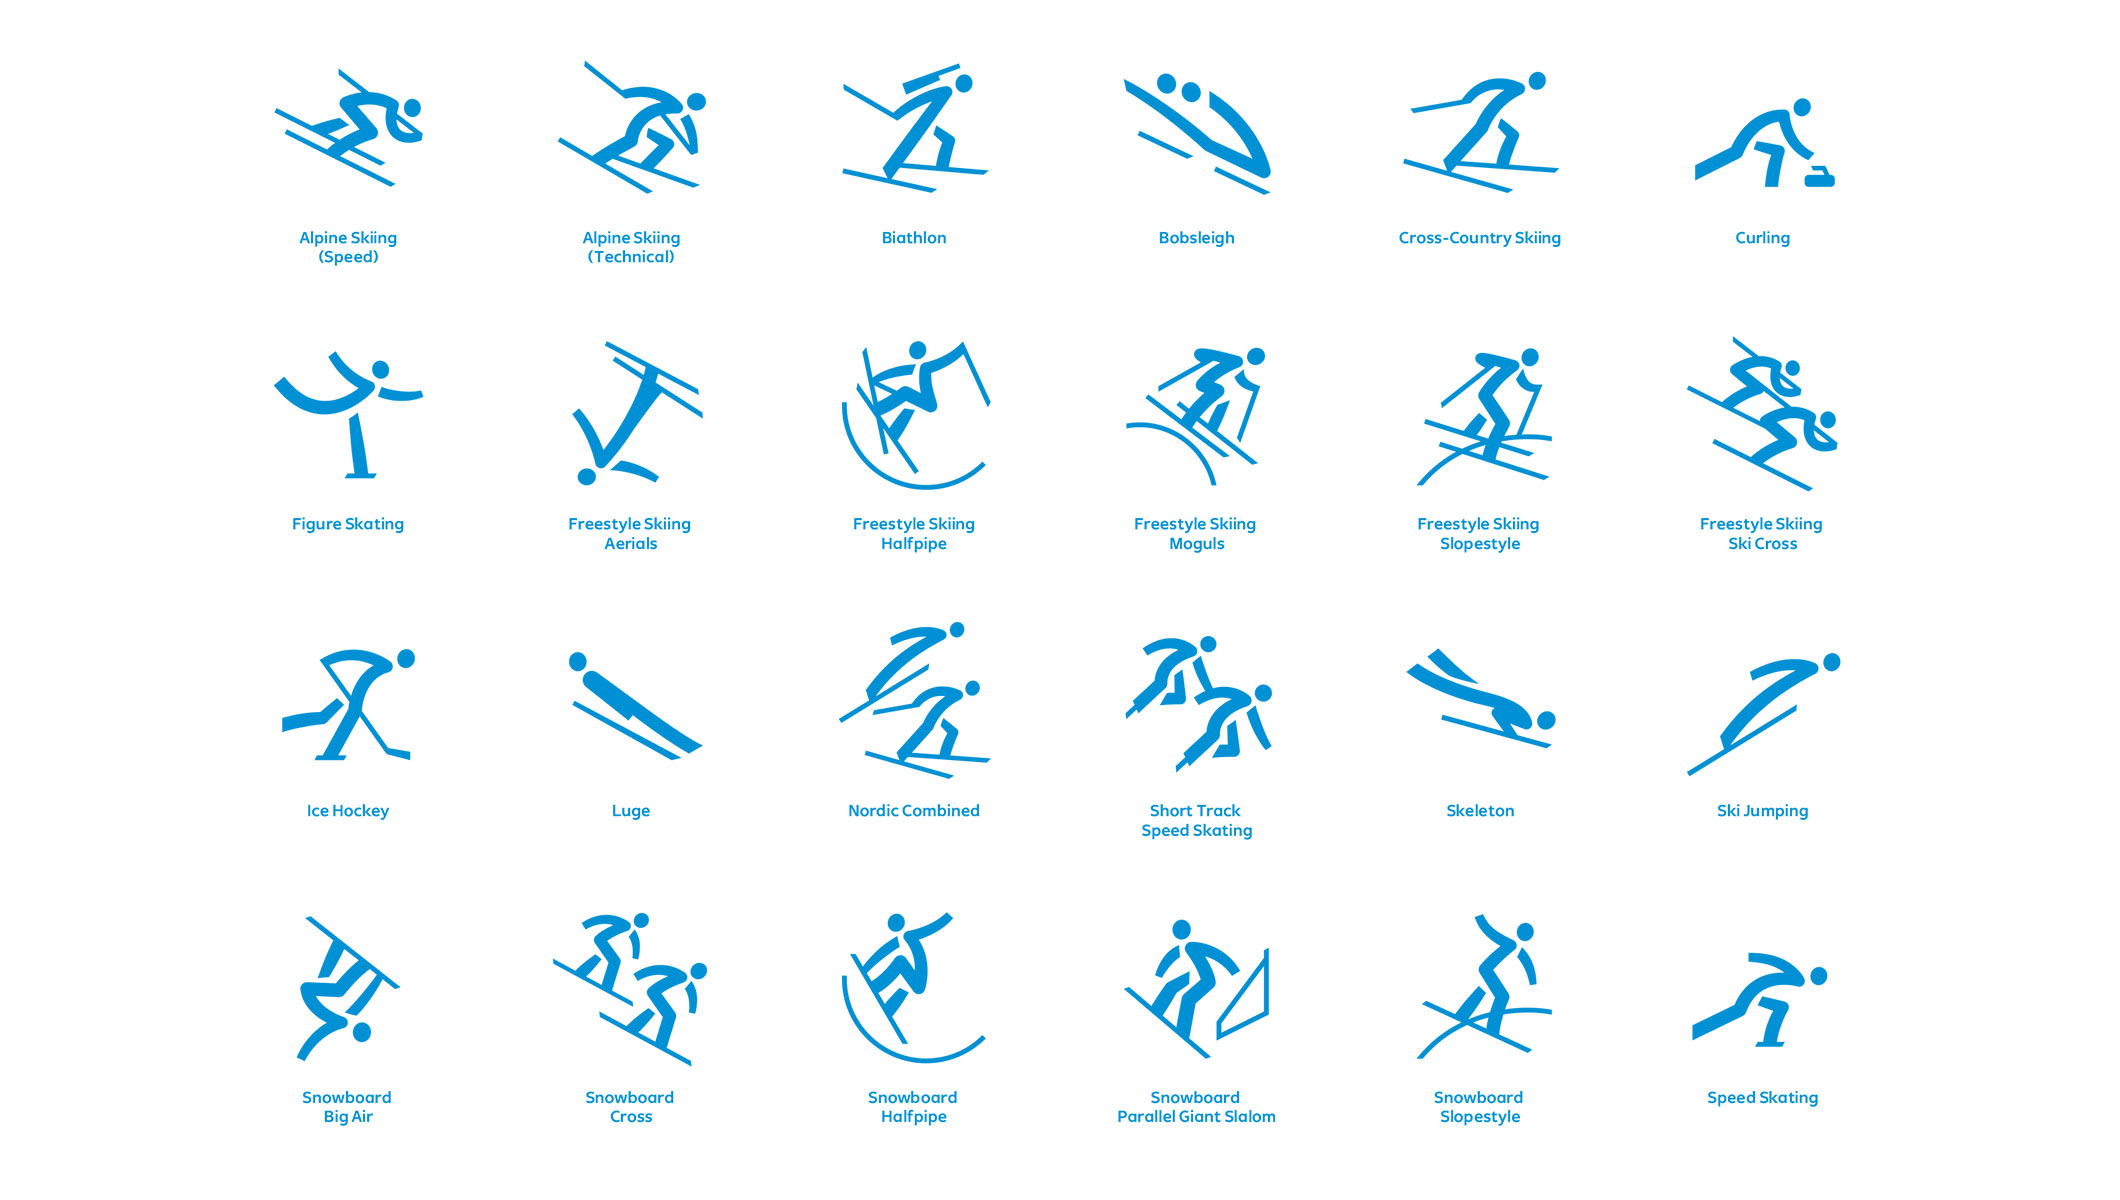 25012017-PyeongChang-2018-Pictograms